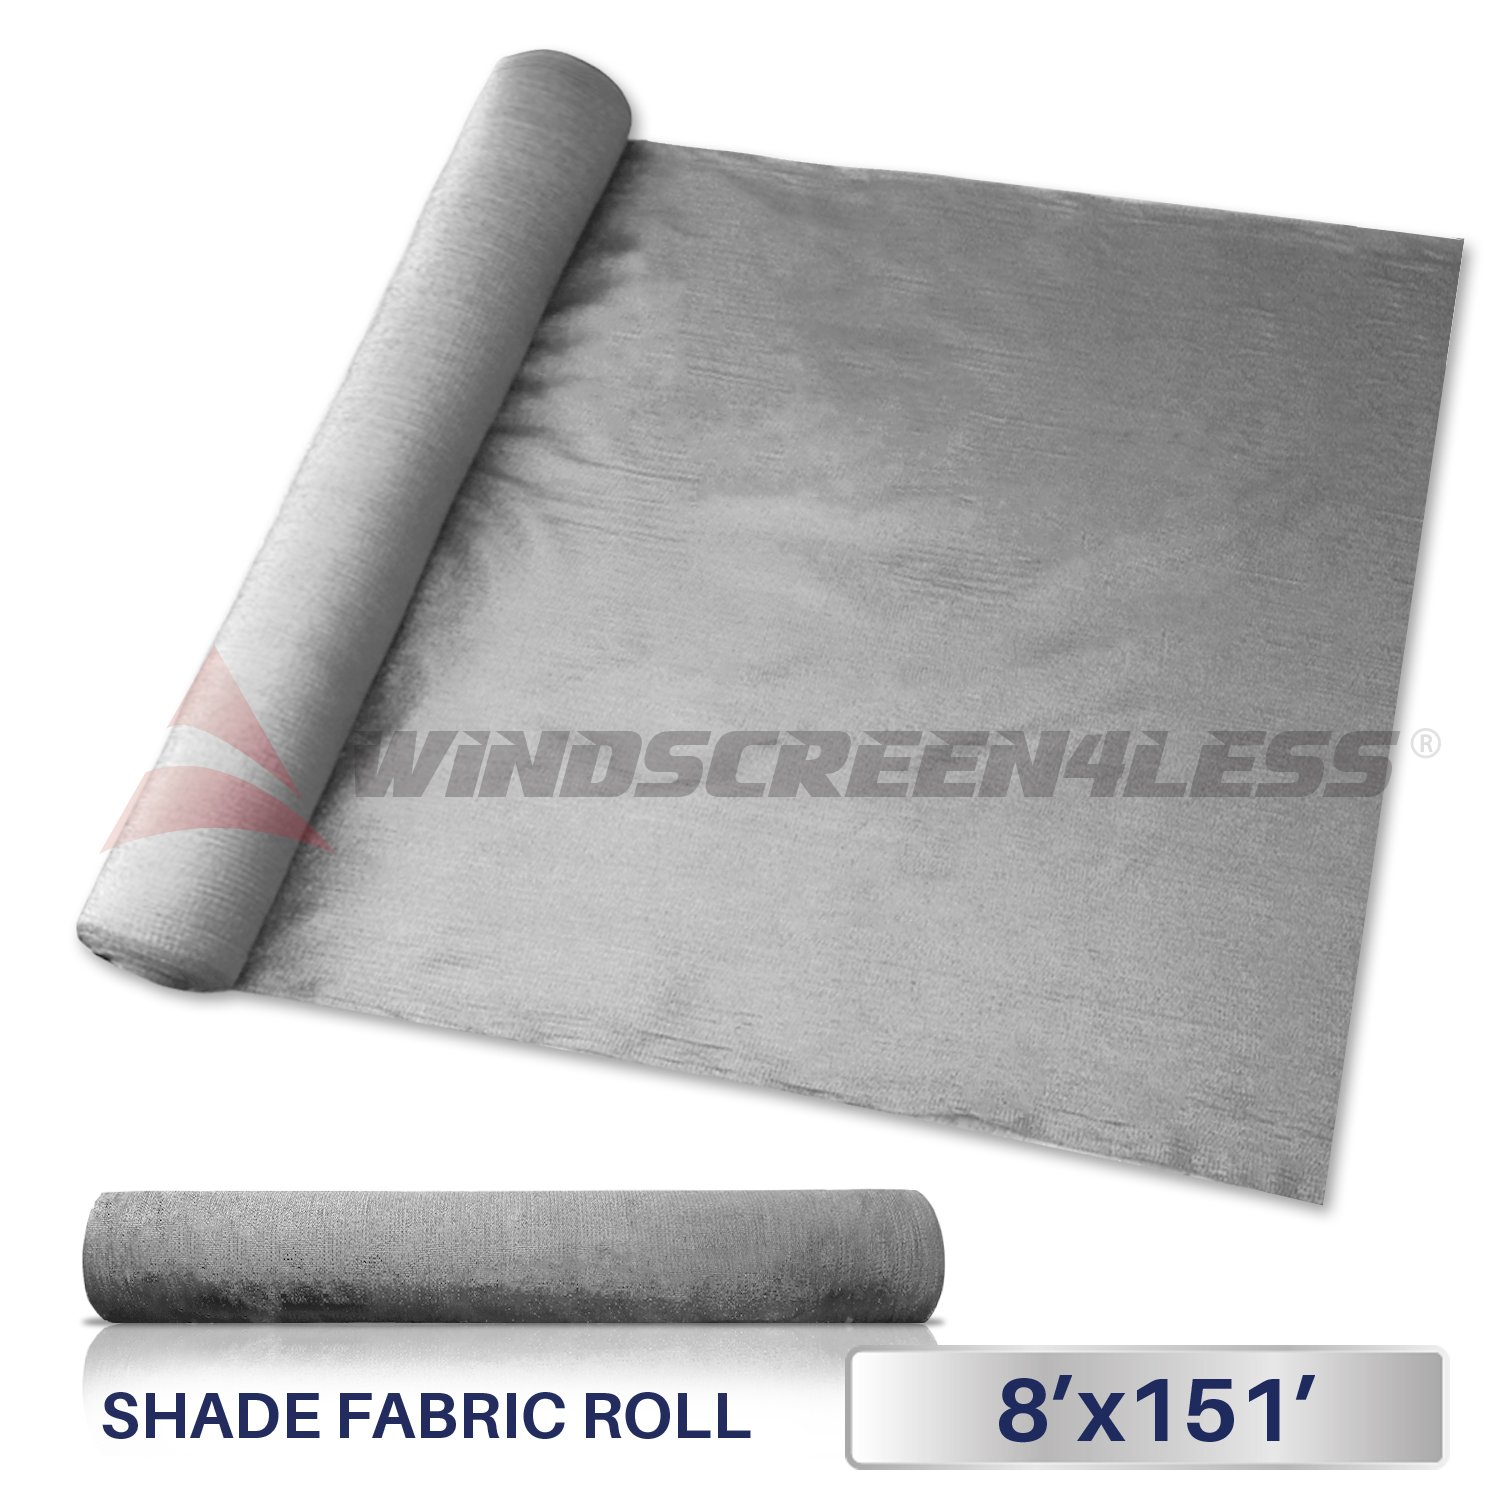 Windscreen4less Light Grey Sunblock Shade Cloth,95% UV Block Shade Fabric Roll 8ft x 151ft by Windscreen4less